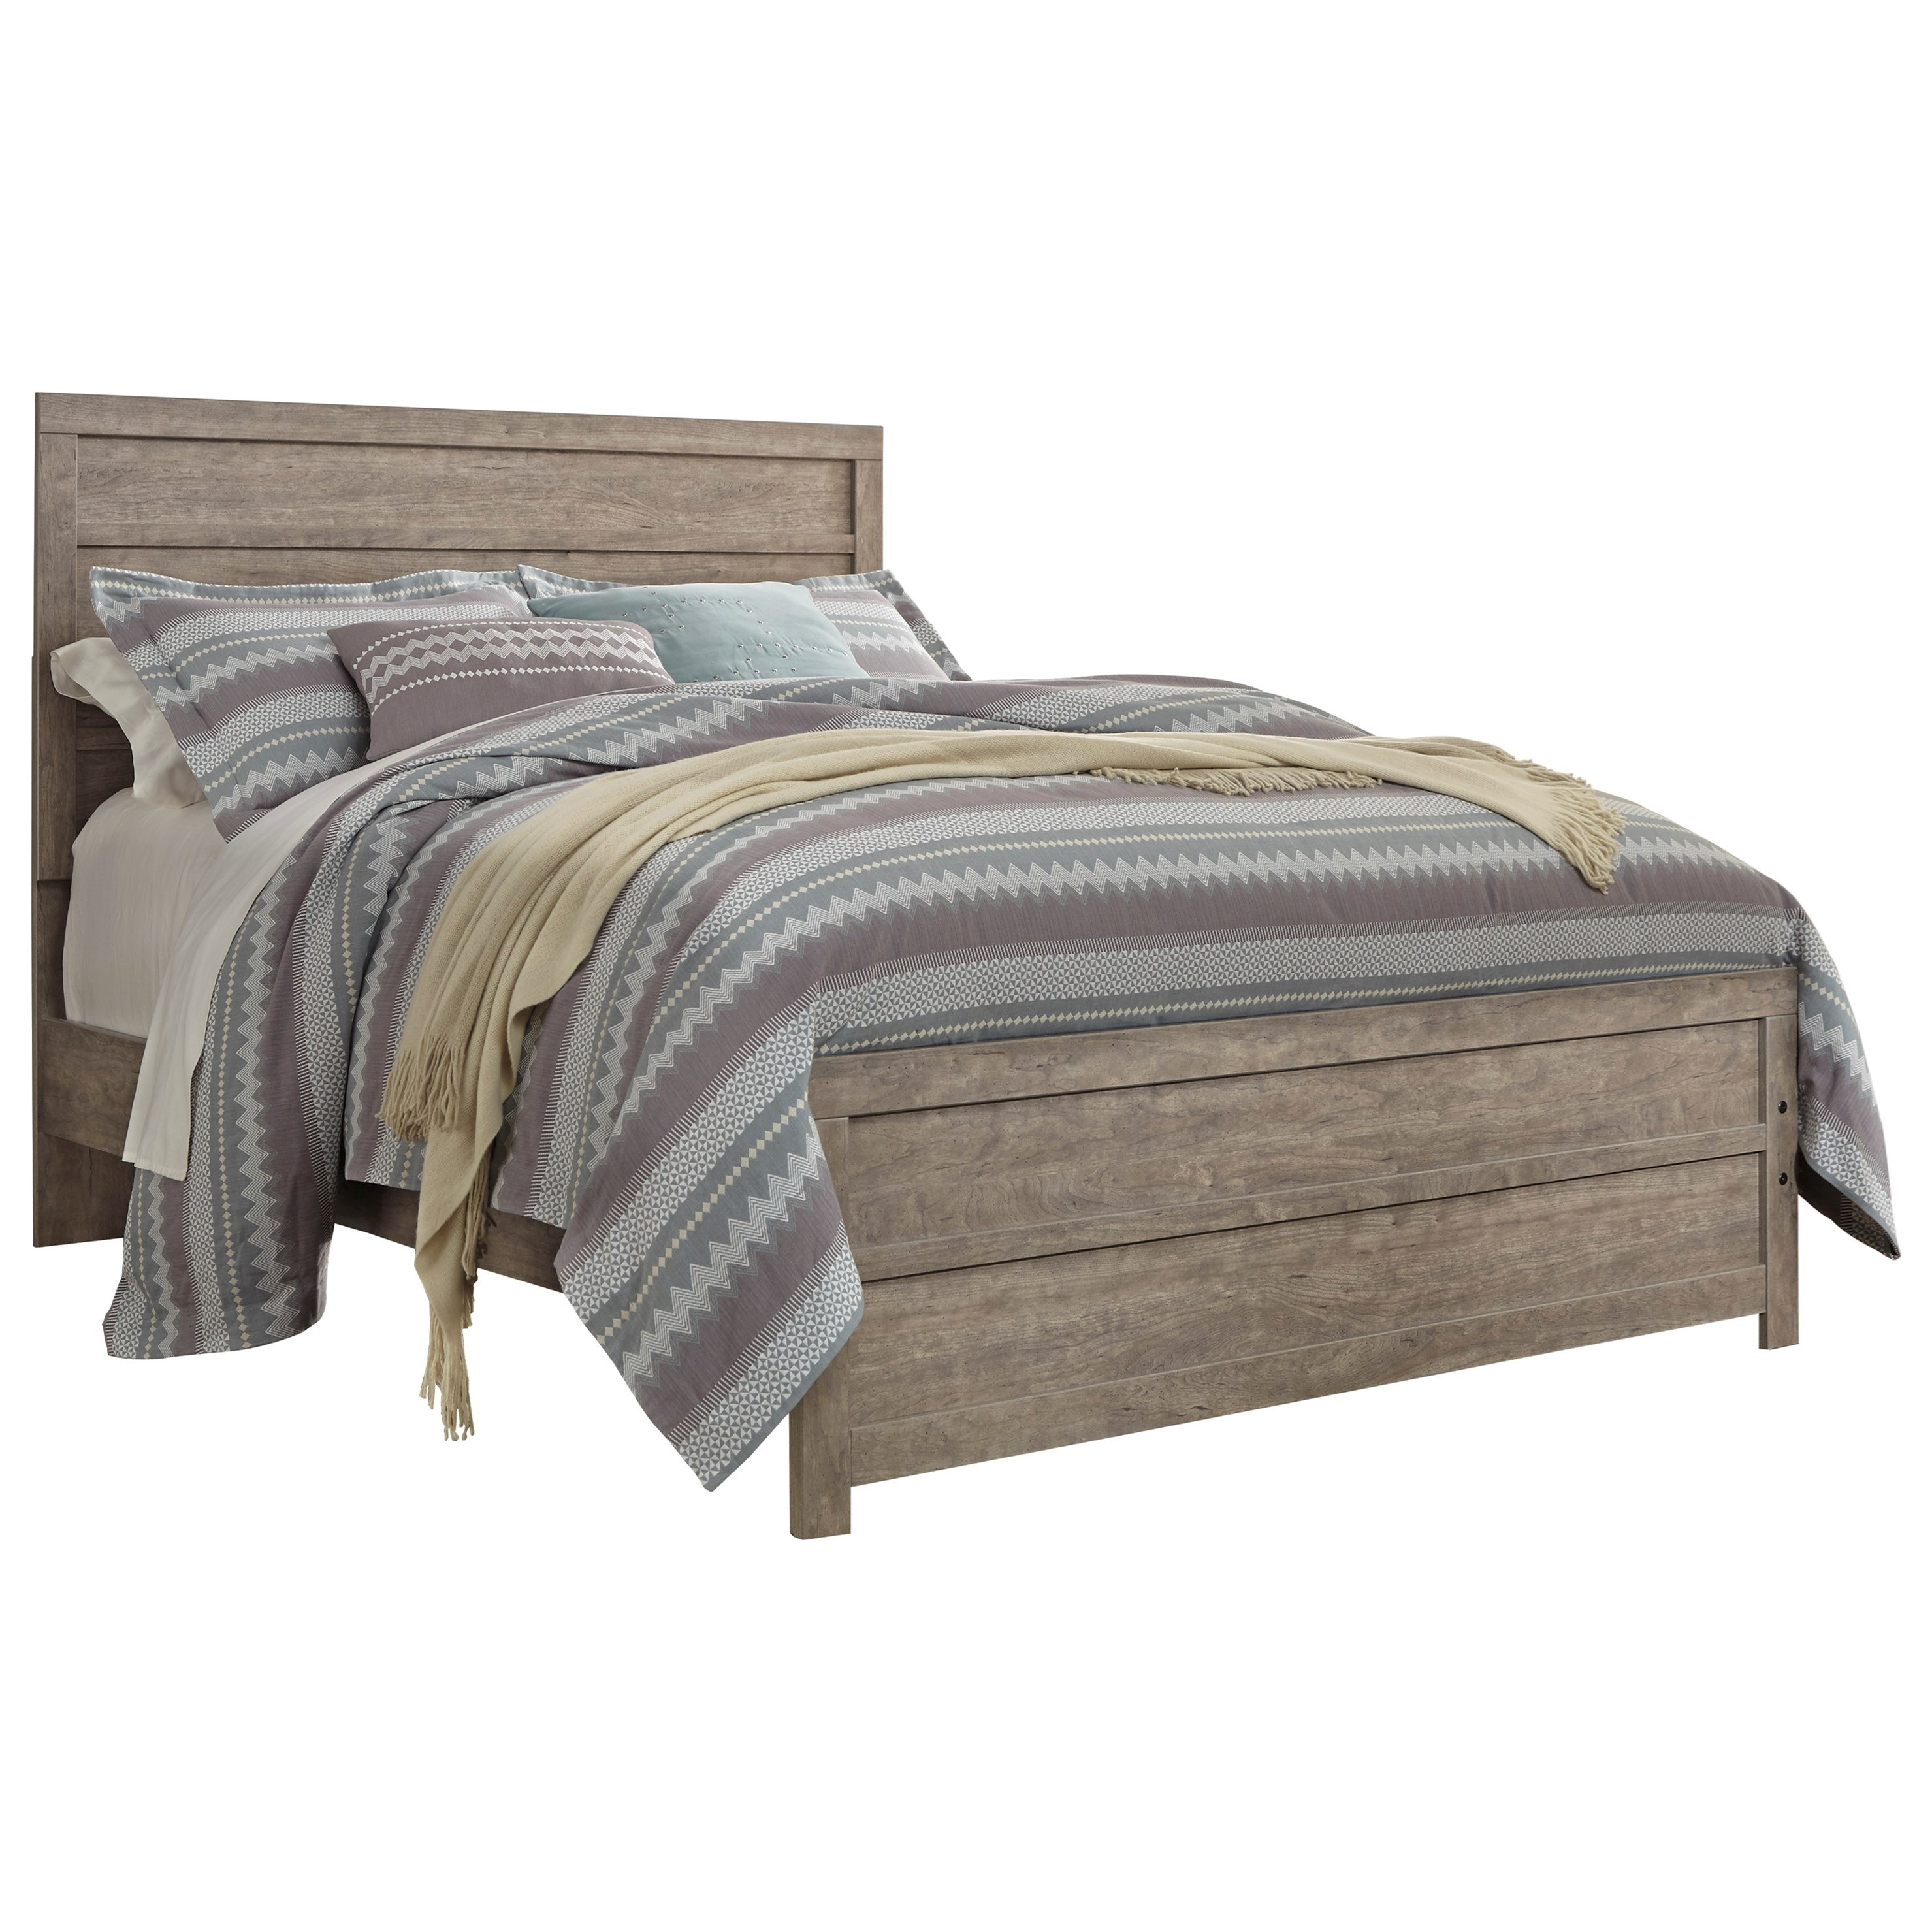 Layla Queen Panel Bed by Ashley at Morris Home